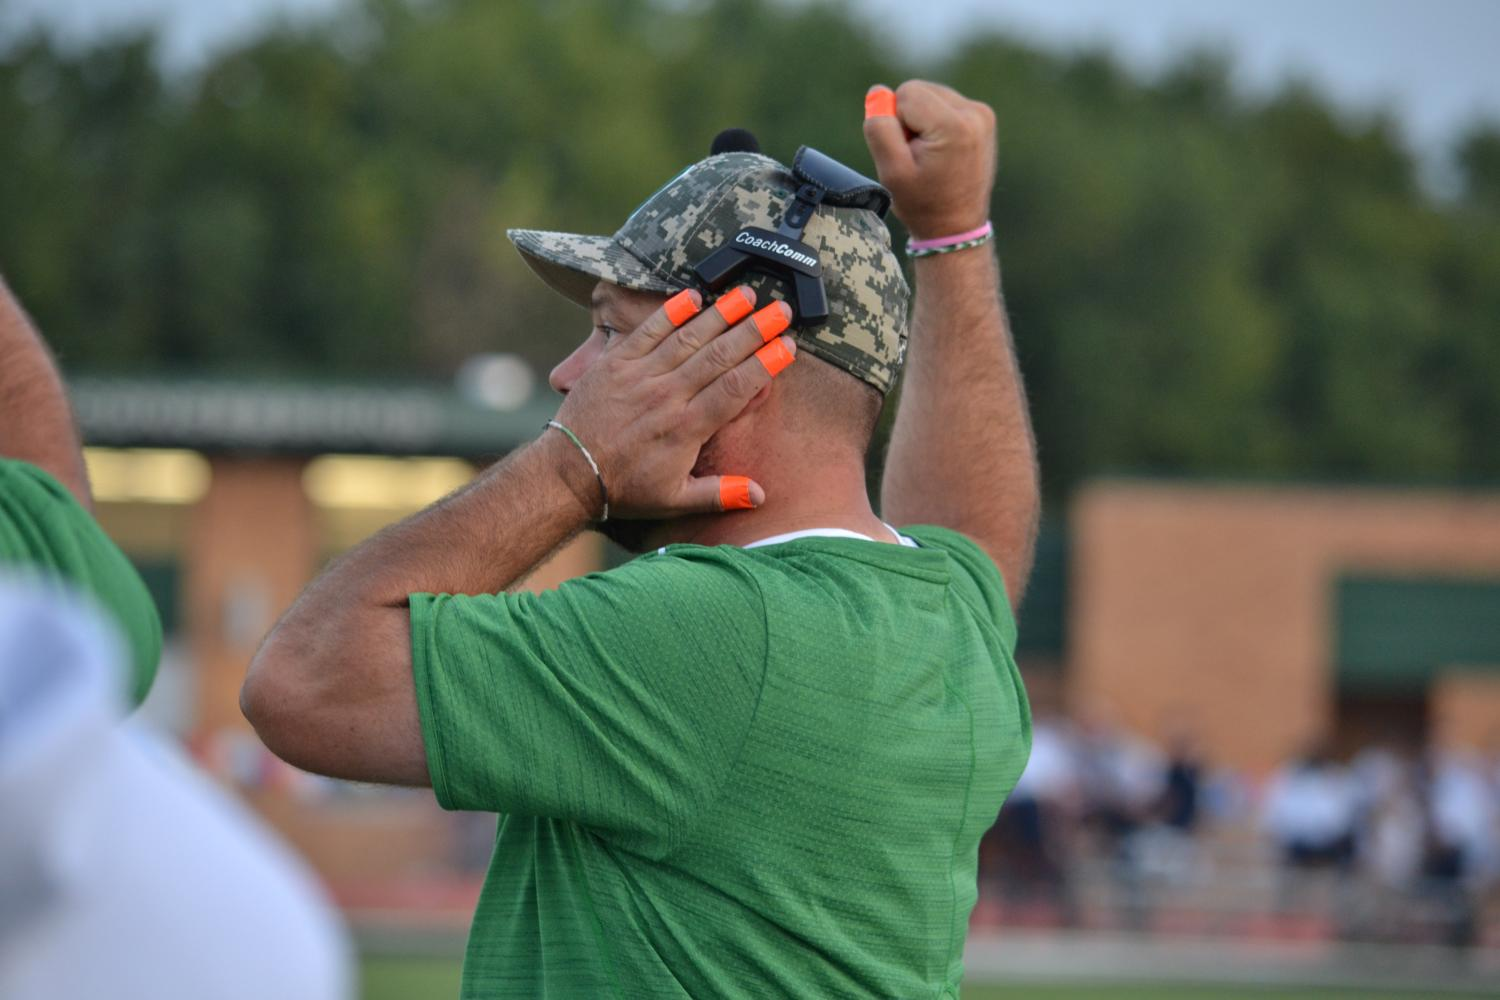 Coach Olmstead signaling to the running backs on the field during the game against Maize Sept. 15.